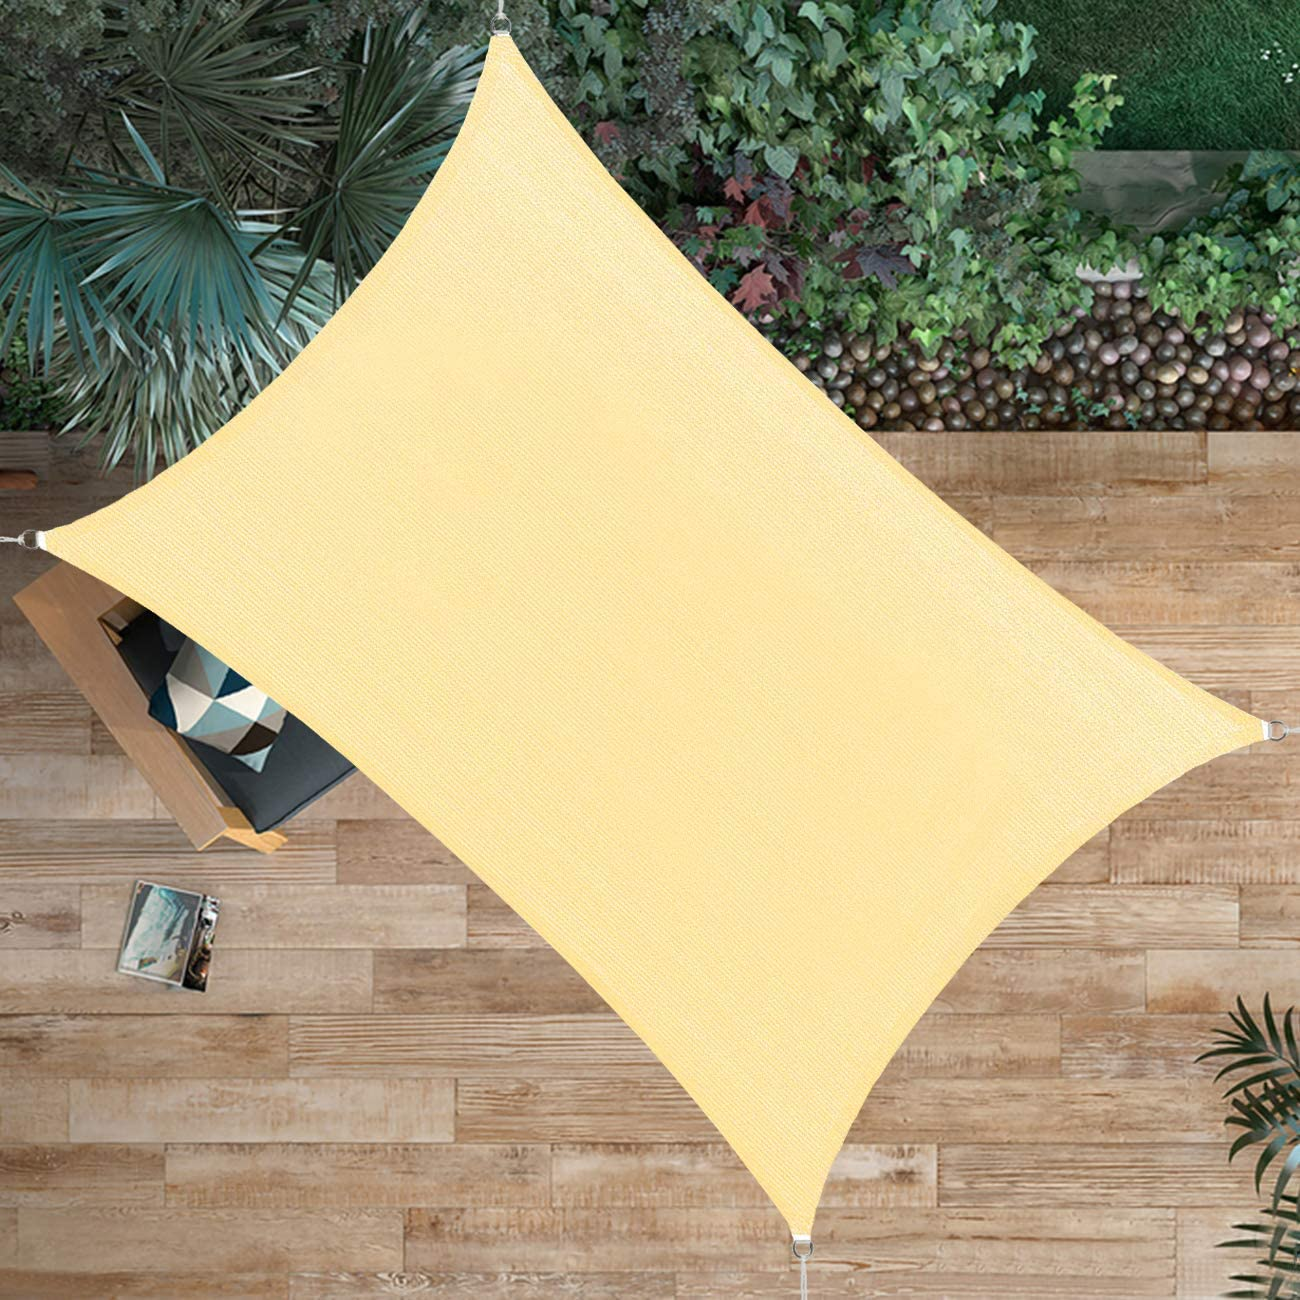 Ogrmar Shade Sail Canopy Durable Fabric Canopy Block Top Cover Rectangle for Patio Backyard Garden Pool Outdoor Activities (12'X16').